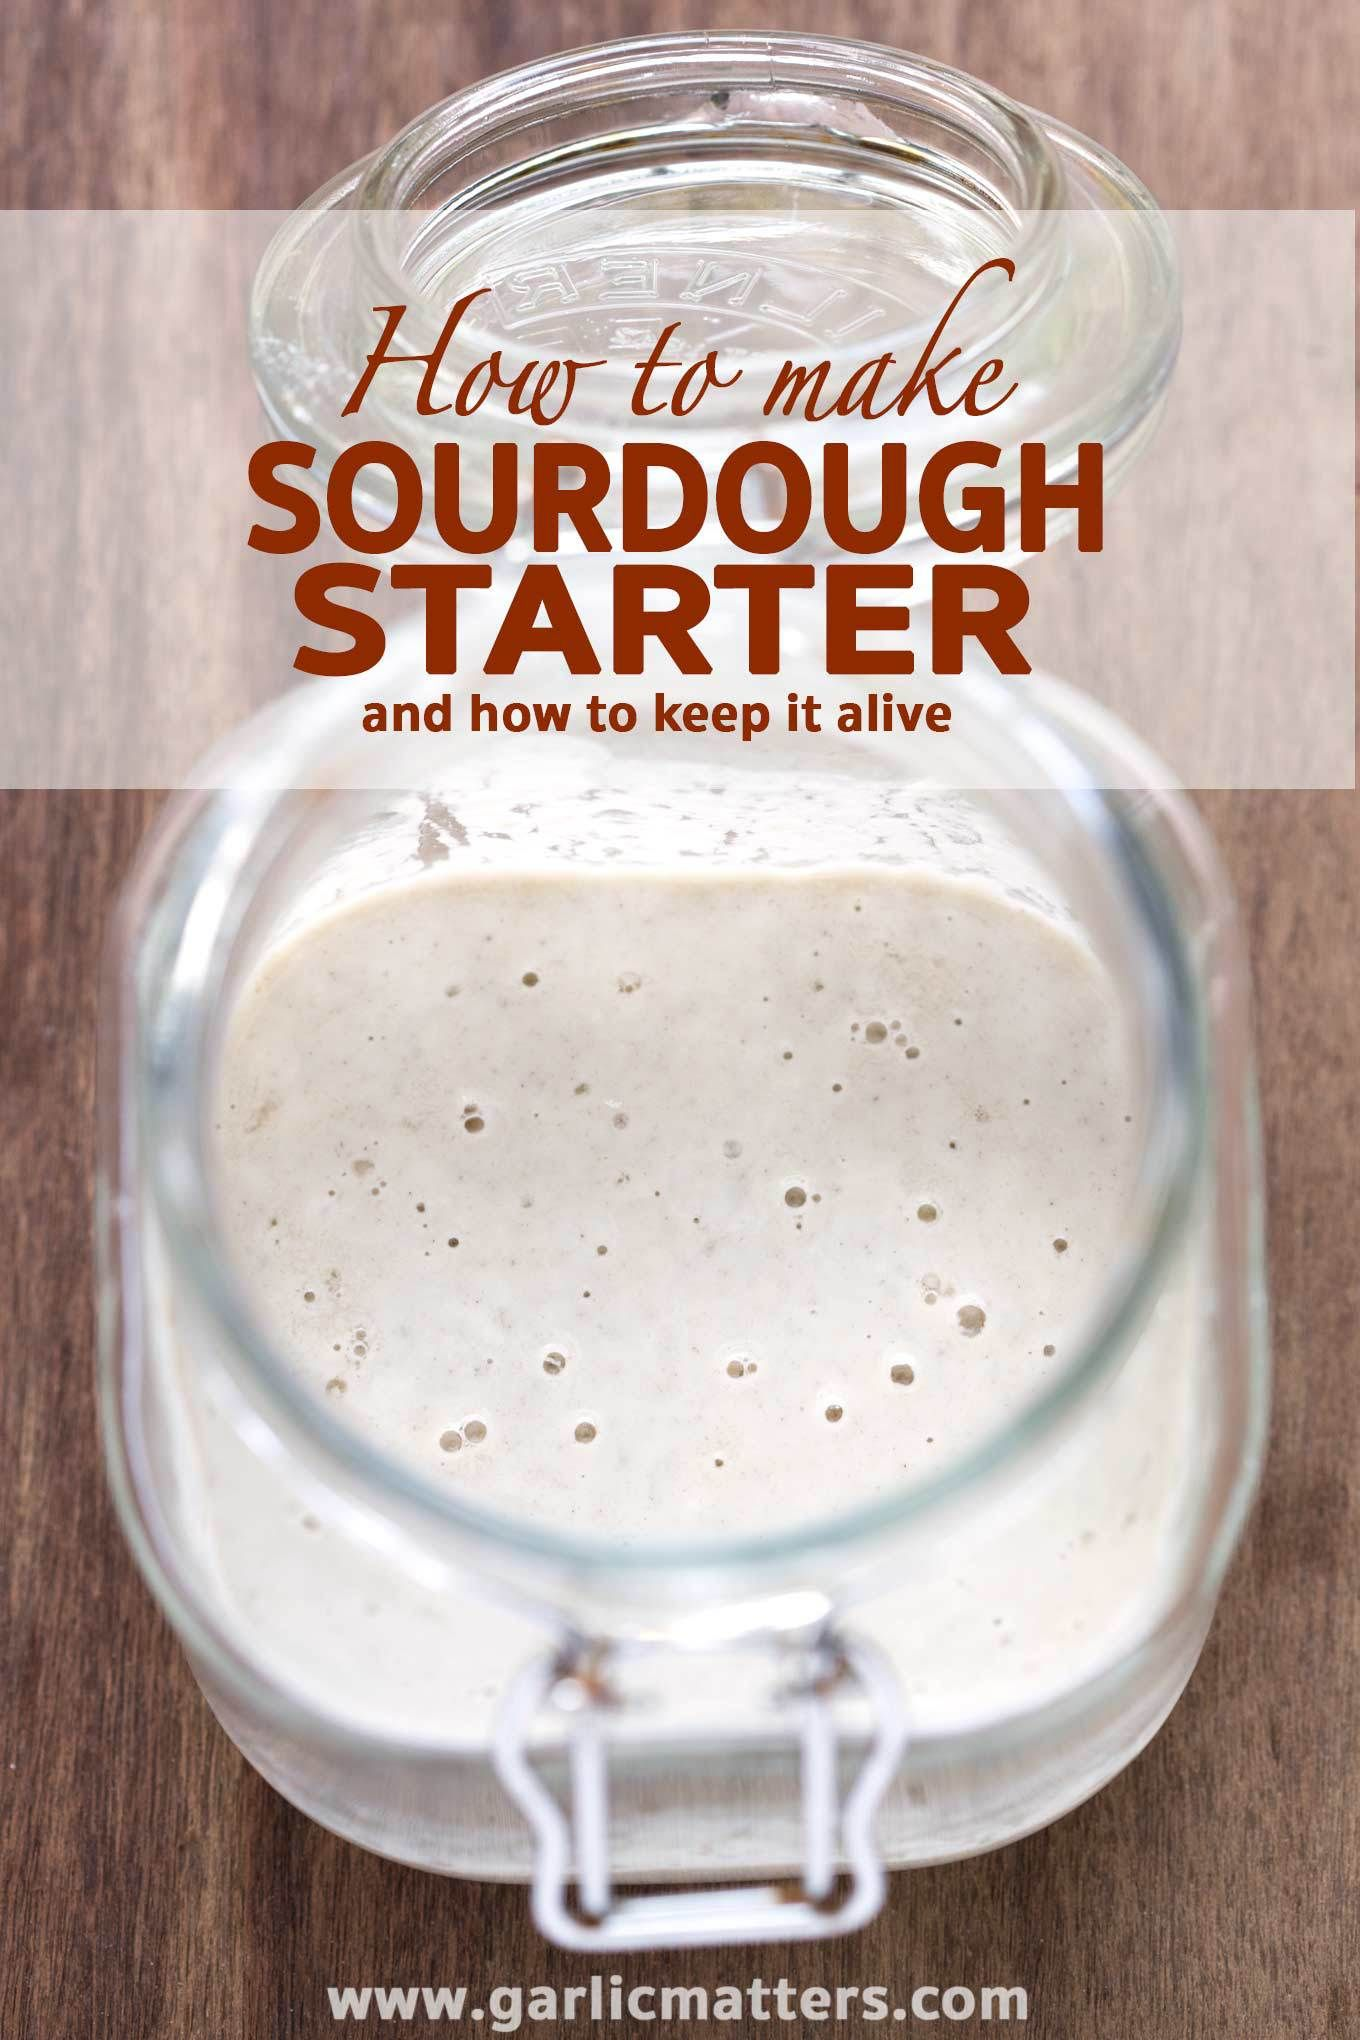 HOW TO MAKE AND KEEP SOURDOUGH STARTER   GARLIC MATTERS is part of Sourdough starter - How to make best sourdough starter with wild yeast for the most delicious sourdough bread  Step by step instructions and troubleshooting